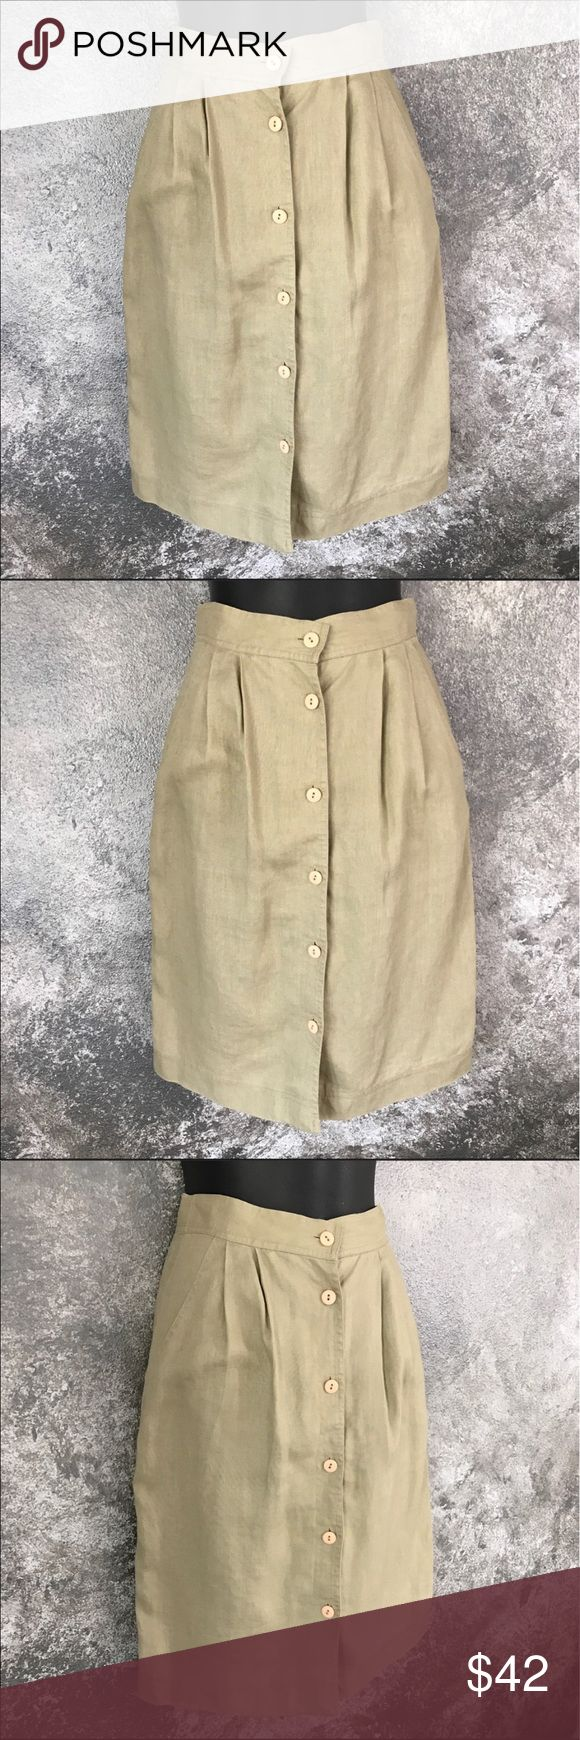 """Vintage Neumann Marcus pleated tan skirt 25"""" waist Neiman Marcus apparenza brand khaki tan button down skirt. Waist measures approximately 25."""" Length is approximately 23.5."""" Sz 6, but runs small. 100% linen. GUC. Smoke free home. Bundle with other items for more discounts. Neiman Marcus Skirts A-Line or Full"""